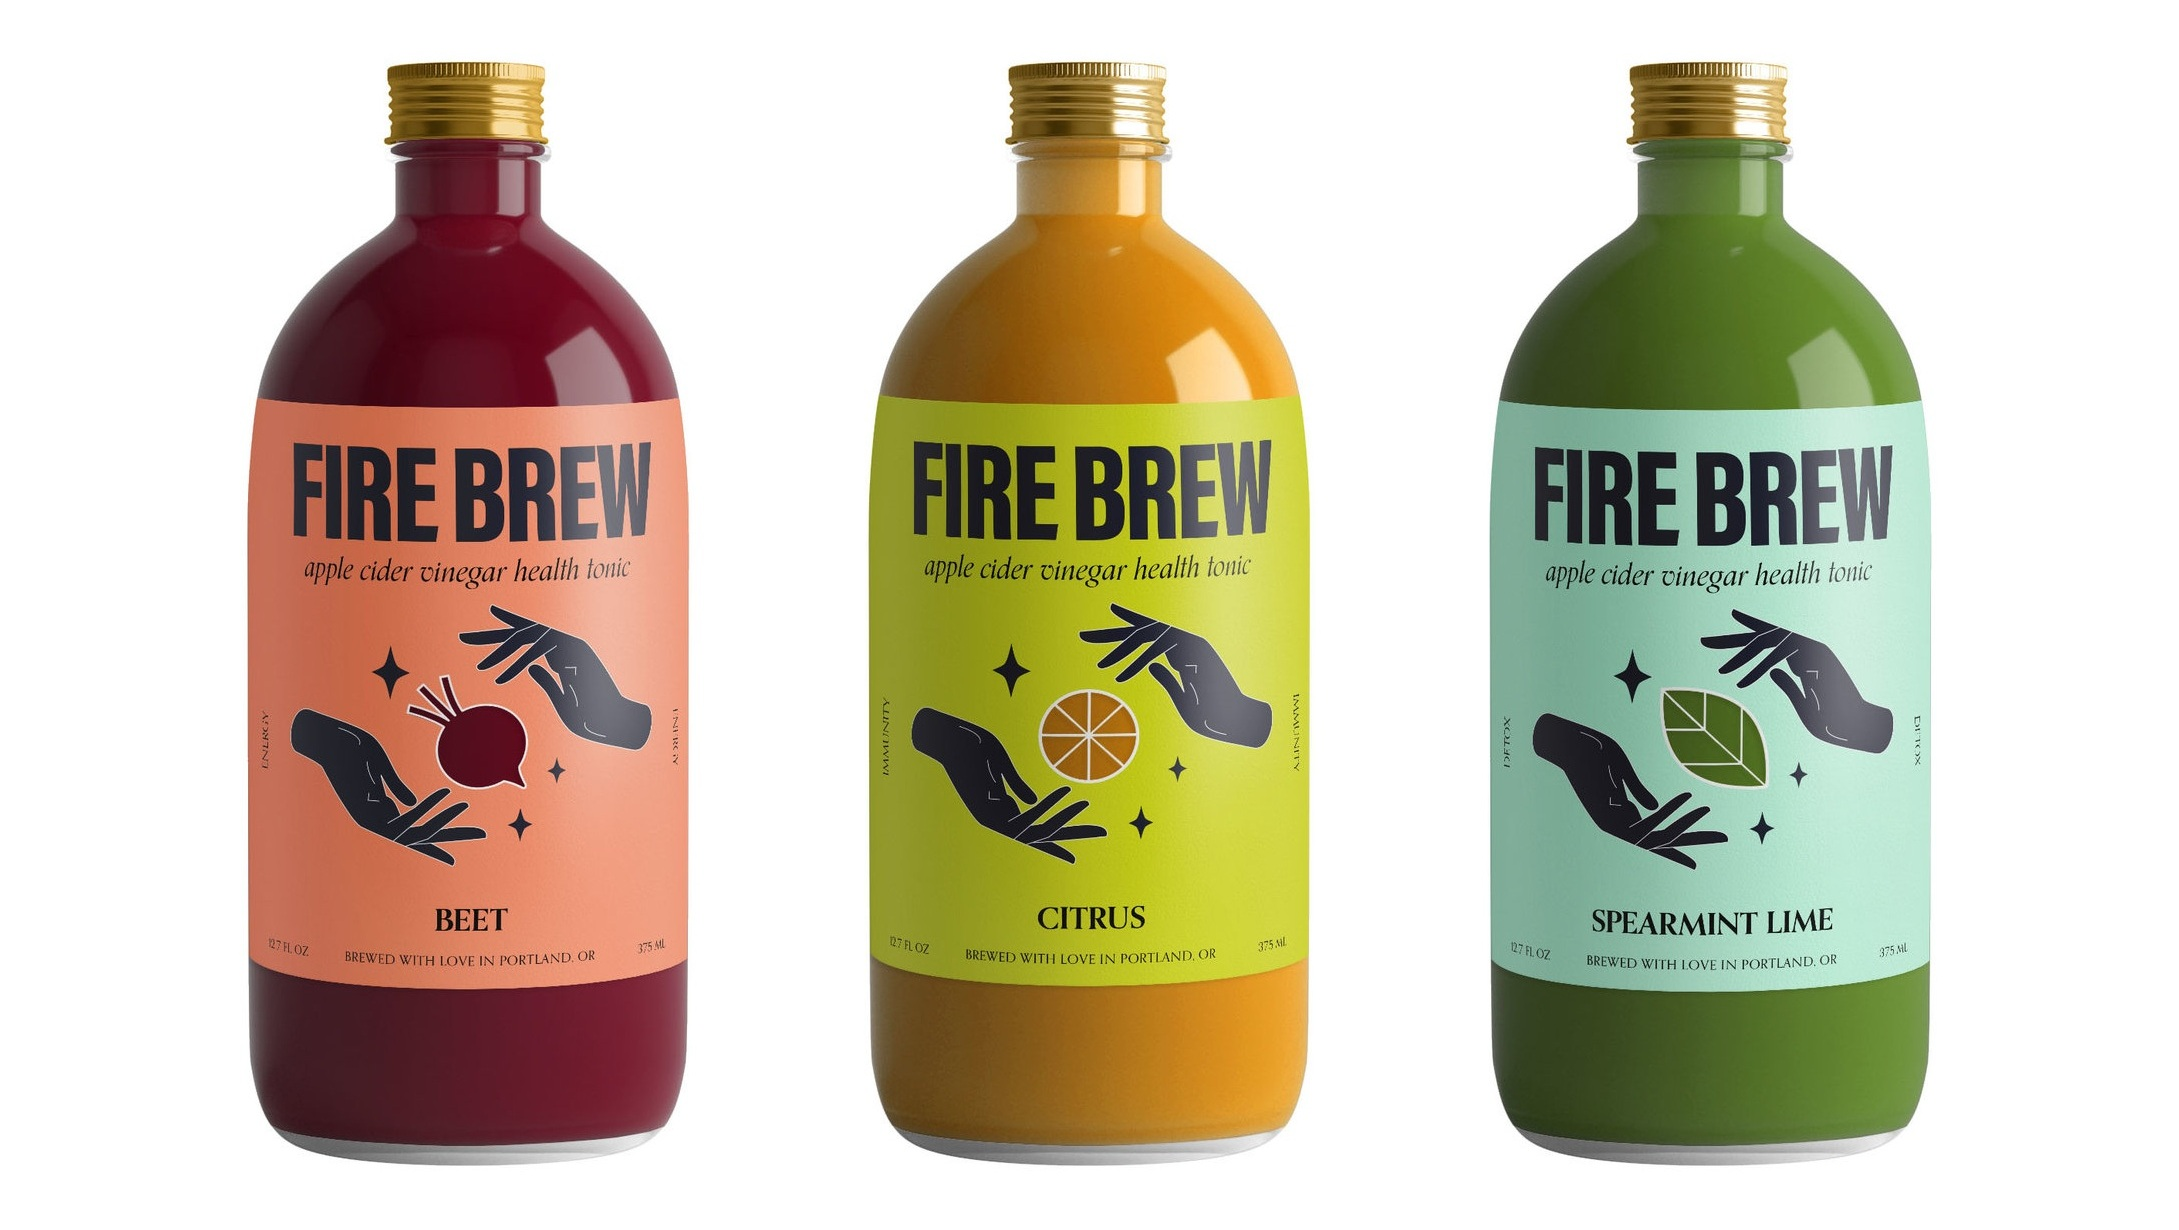 FIREBREW_big%2Bbottle_design.jpg